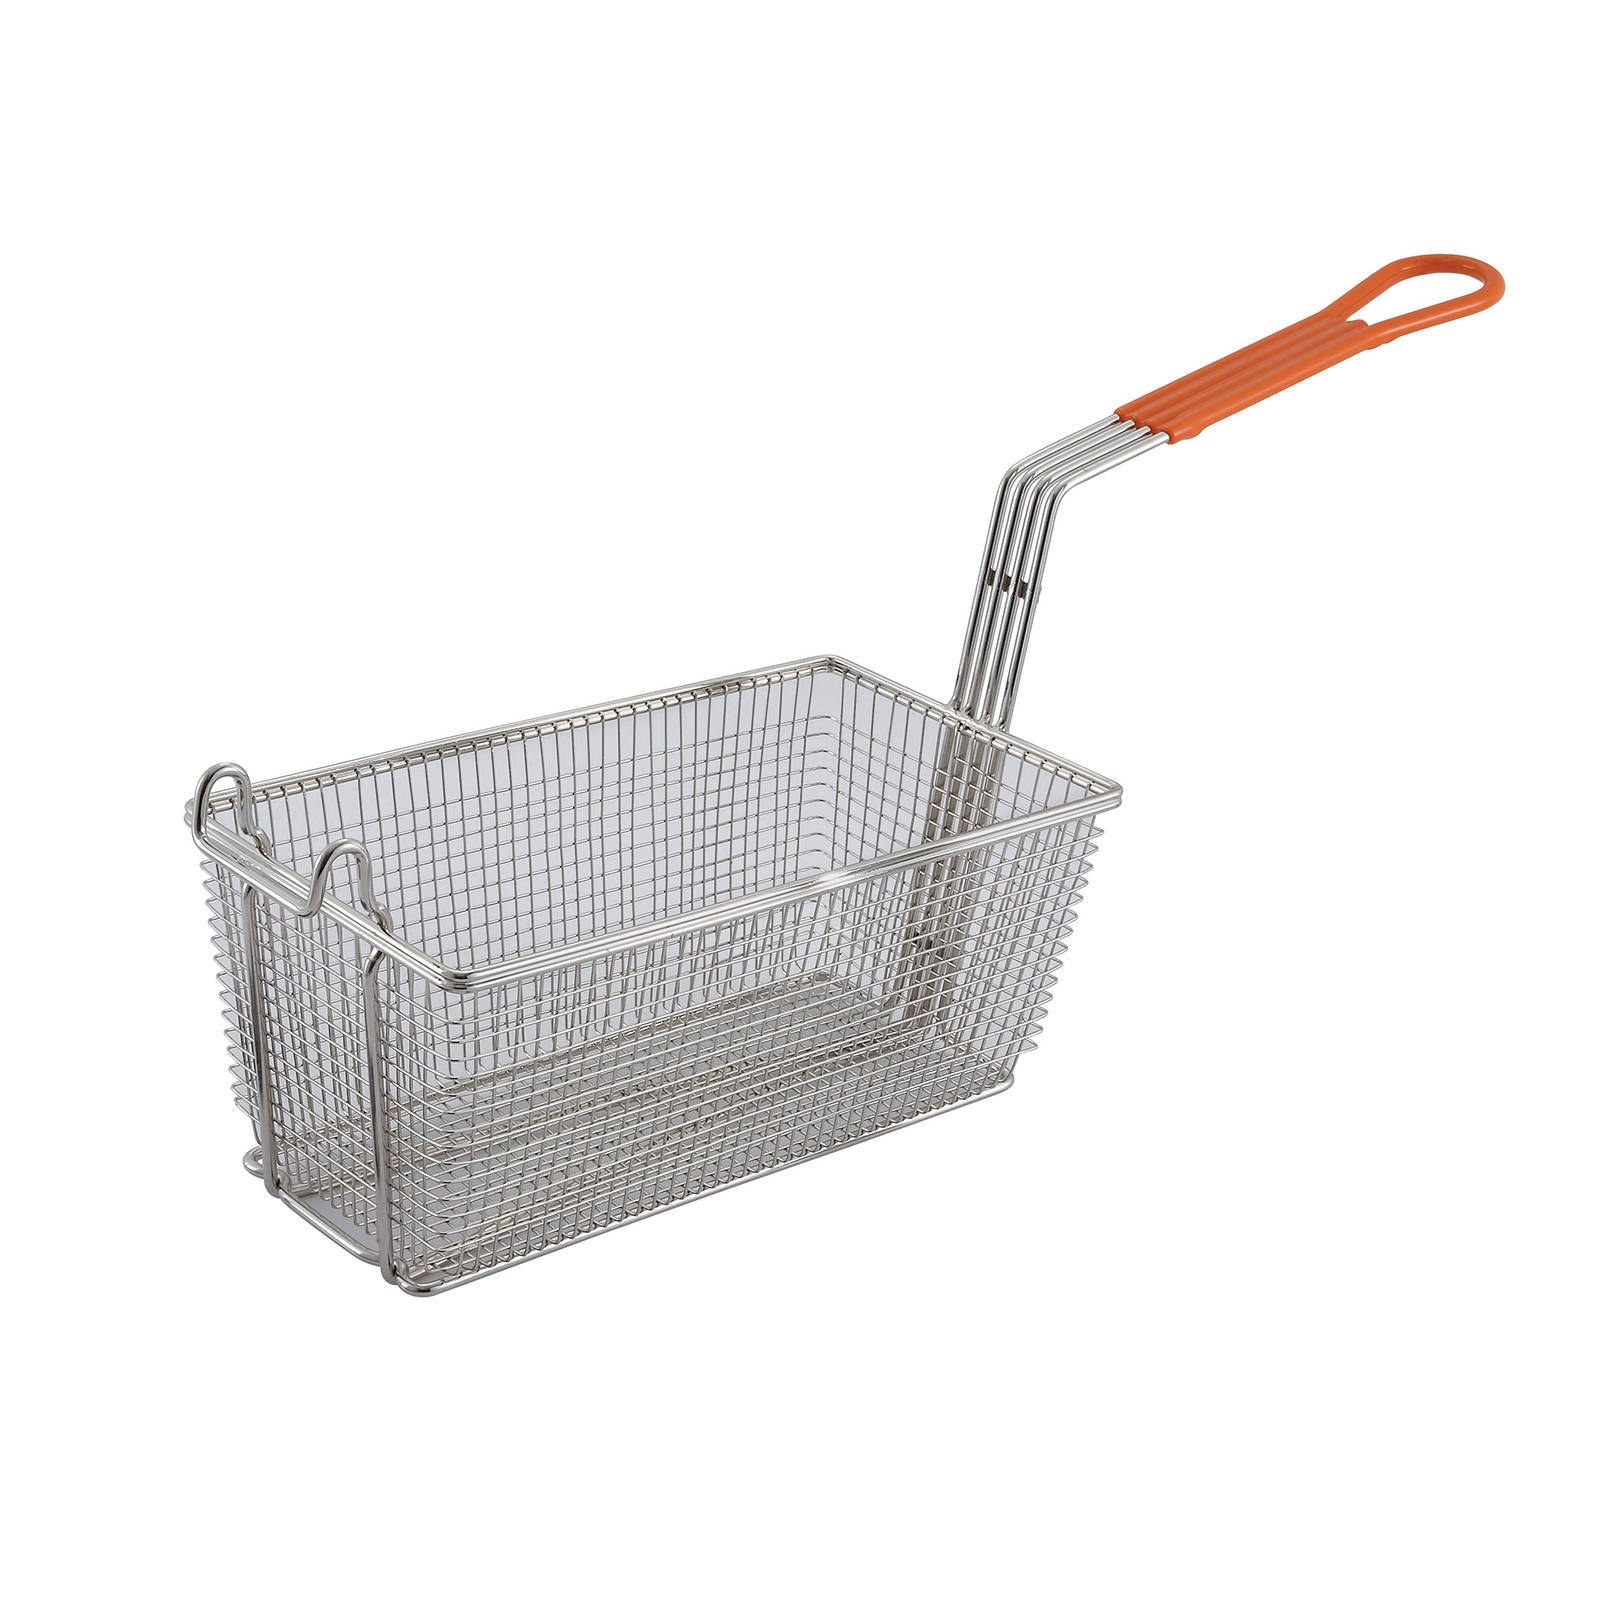 Winco FB-10 fryer basket